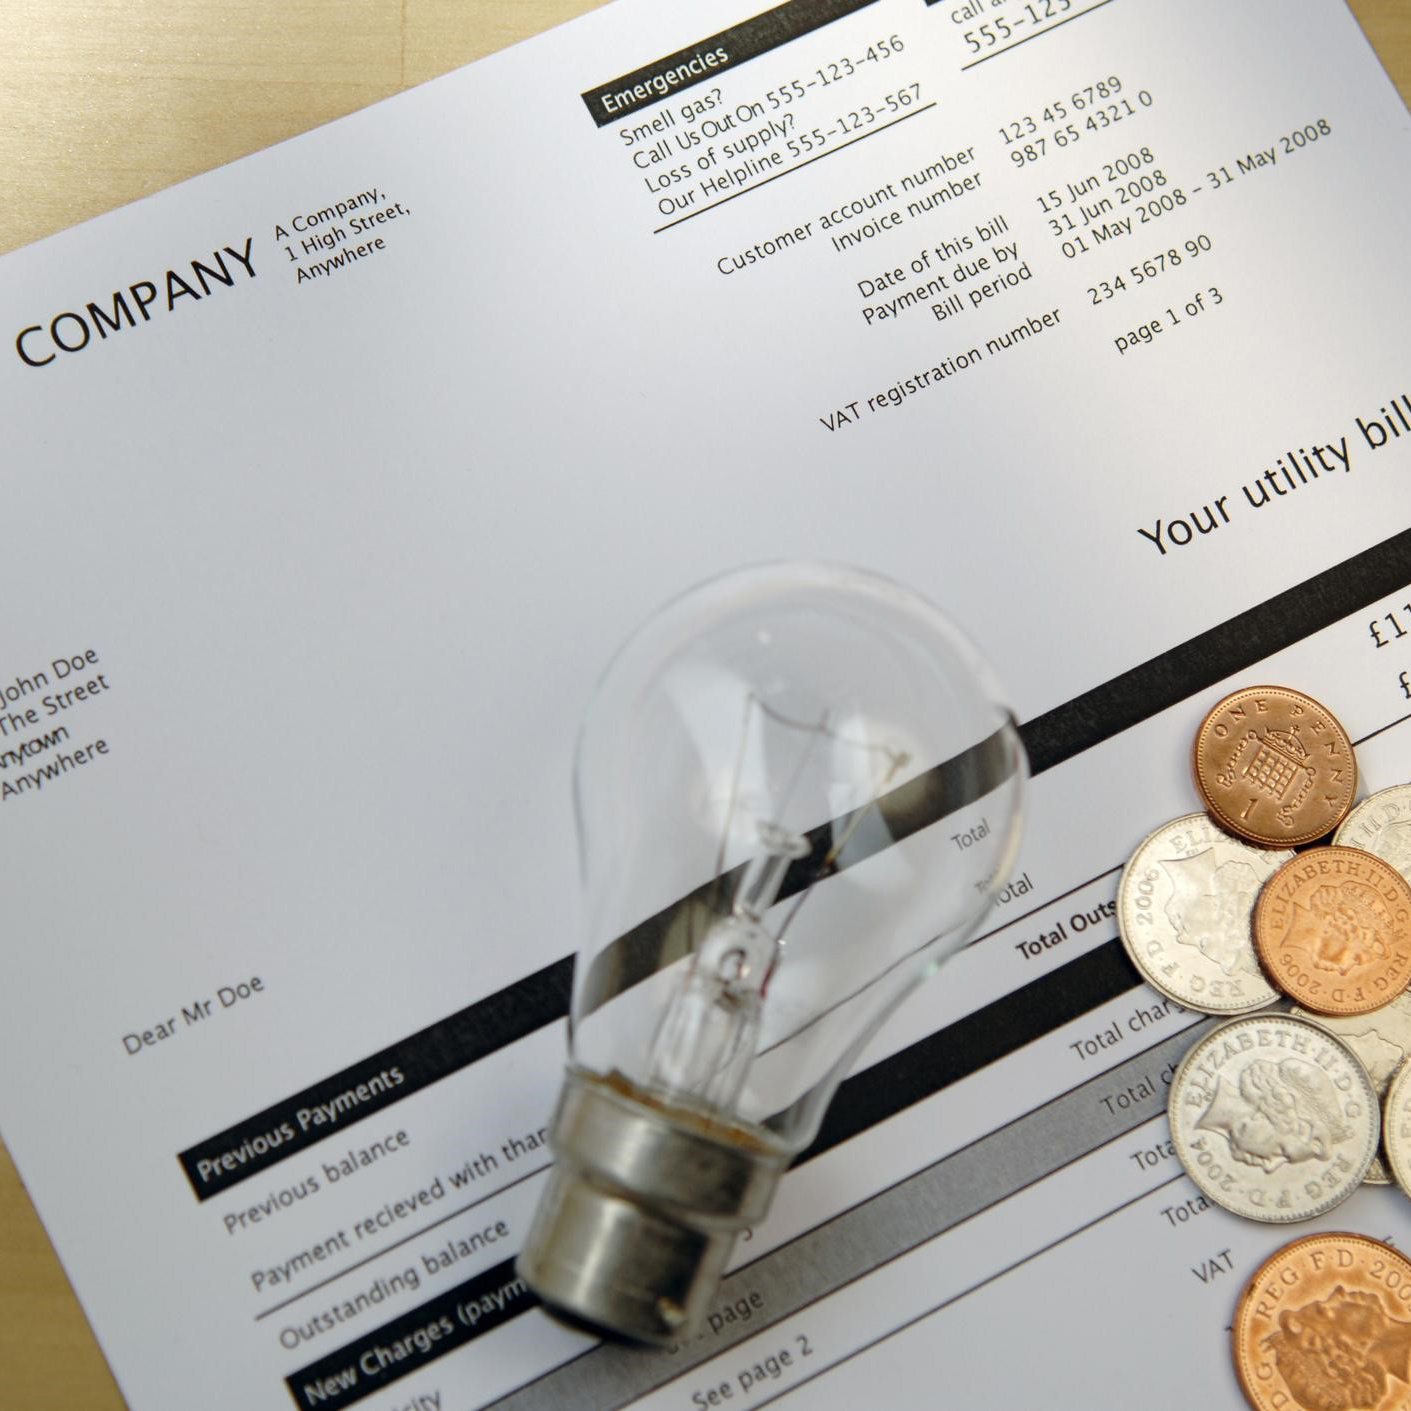 What is the standing charge on my energy bill?